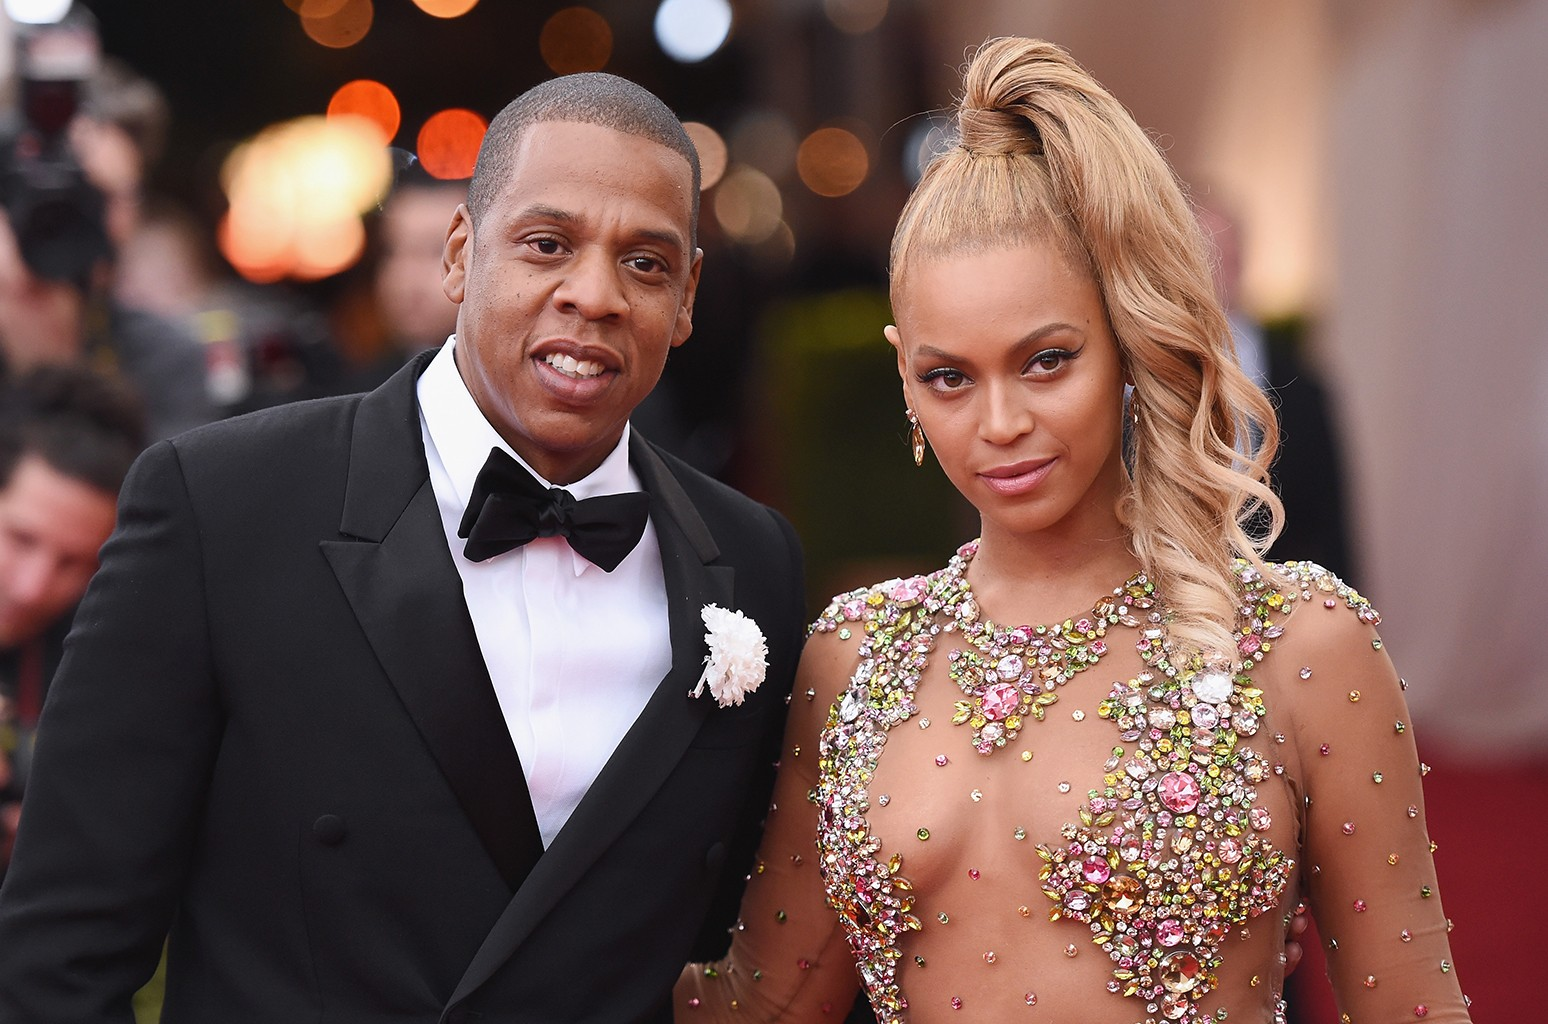 Jay Z and Beyonce attend the China: Through The Looking Glass Costume Institute Benefit Gala at the Metropolitan Museum of Art on May 4, 2015 in New York City.